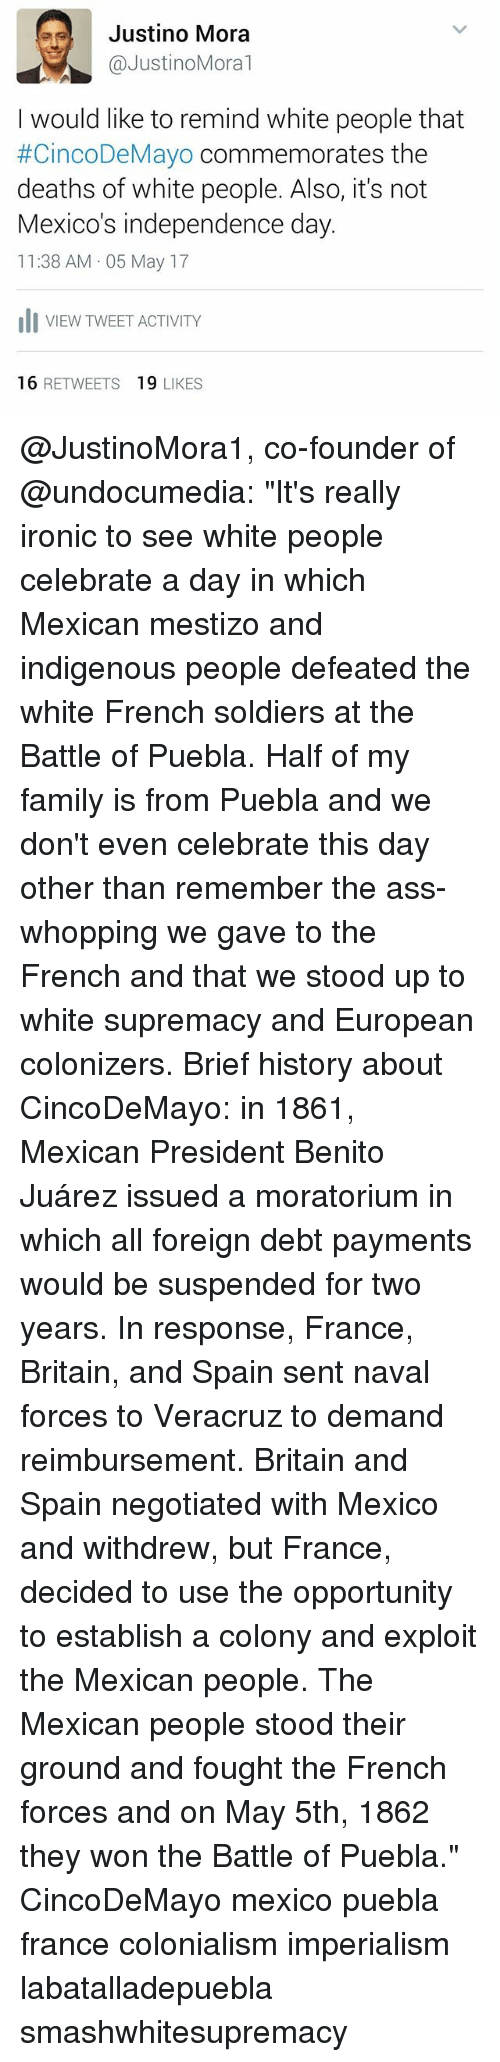 "Ass, Family, and Independence Day: es Justino Mora  @Justino Moral  I would like to remind white people that  #CincoDeMayo commemorates the  deaths of white people. Also, it's not  Mexico's independence day.  11:38 AM 05 May 17  Ili VIEW TWEET ACTIVITY  16  RETWEETS  19  LIKES @JustinoMora1, co-founder of @undocumedia: ""It's really ironic to see white people celebrate a day in which Mexican mestizo and indigenous people defeated the white French soldiers at the Battle of Puebla. Half of my family is from Puebla and we don't even celebrate this day other than remember the ass-whopping we gave to the French and that we stood up to white supremacy and European colonizers. Brief history about CincoDeMayo: in 1861, Mexican President Benito Juárez issued a moratorium in which all foreign debt payments would be suspended for two years. In response, France, Britain, and Spain sent naval forces to Veracruz to demand reimbursement. Britain and Spain negotiated with Mexico and withdrew, but France, decided to use the opportunity to establish a colony and exploit the Mexican people. The Mexican people stood their ground and fought the French forces and on May 5th, 1862 they won the Battle of Puebla."" CincoDeMayo mexico puebla france colonialism imperialism labatalladepuebla smashwhitesupremacy"